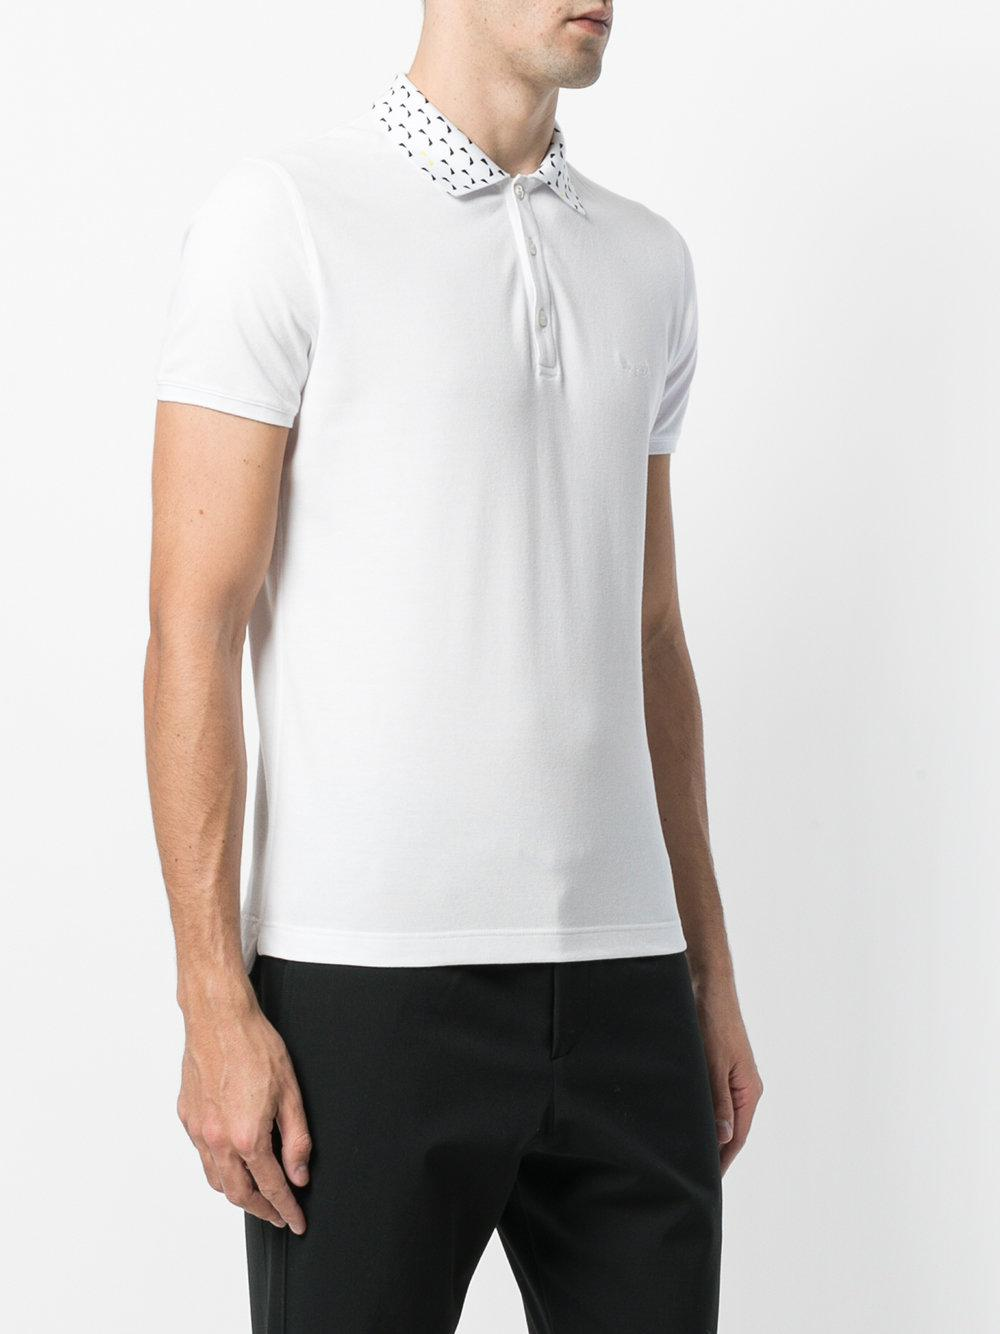 Fendi Cotton Embroidered Collar Polo Top in White for Men